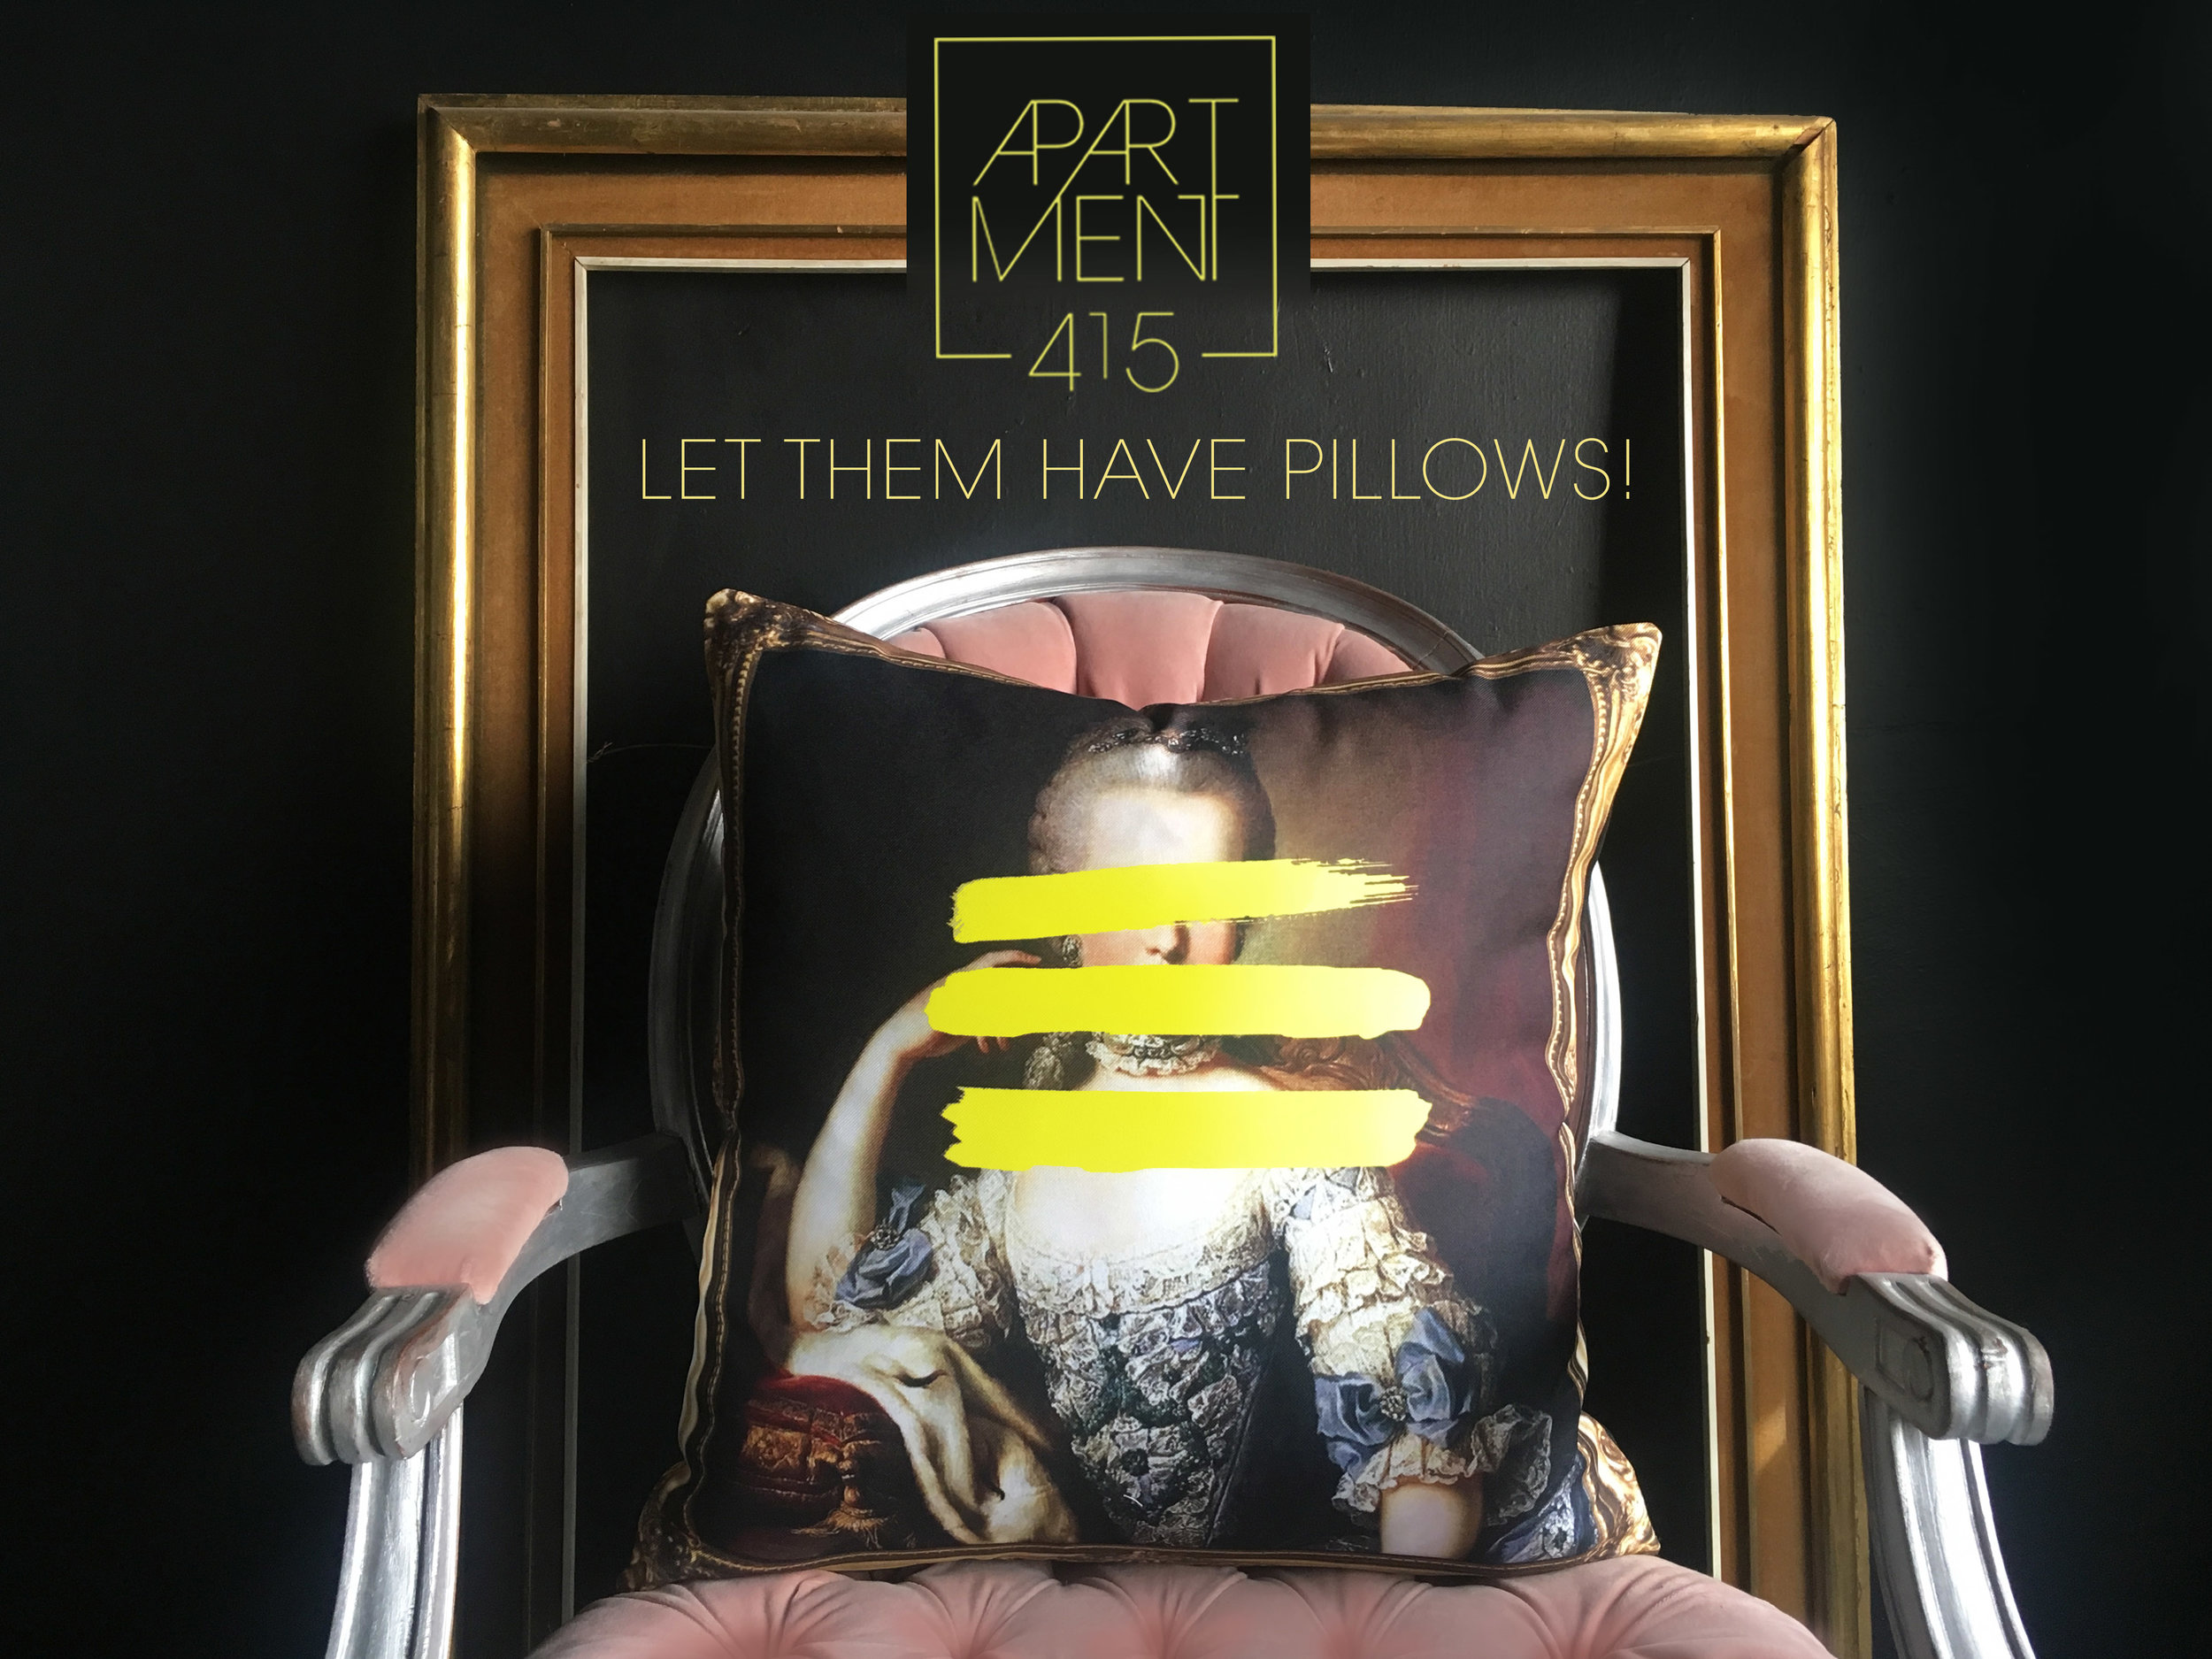 Pillows_ad.jpg